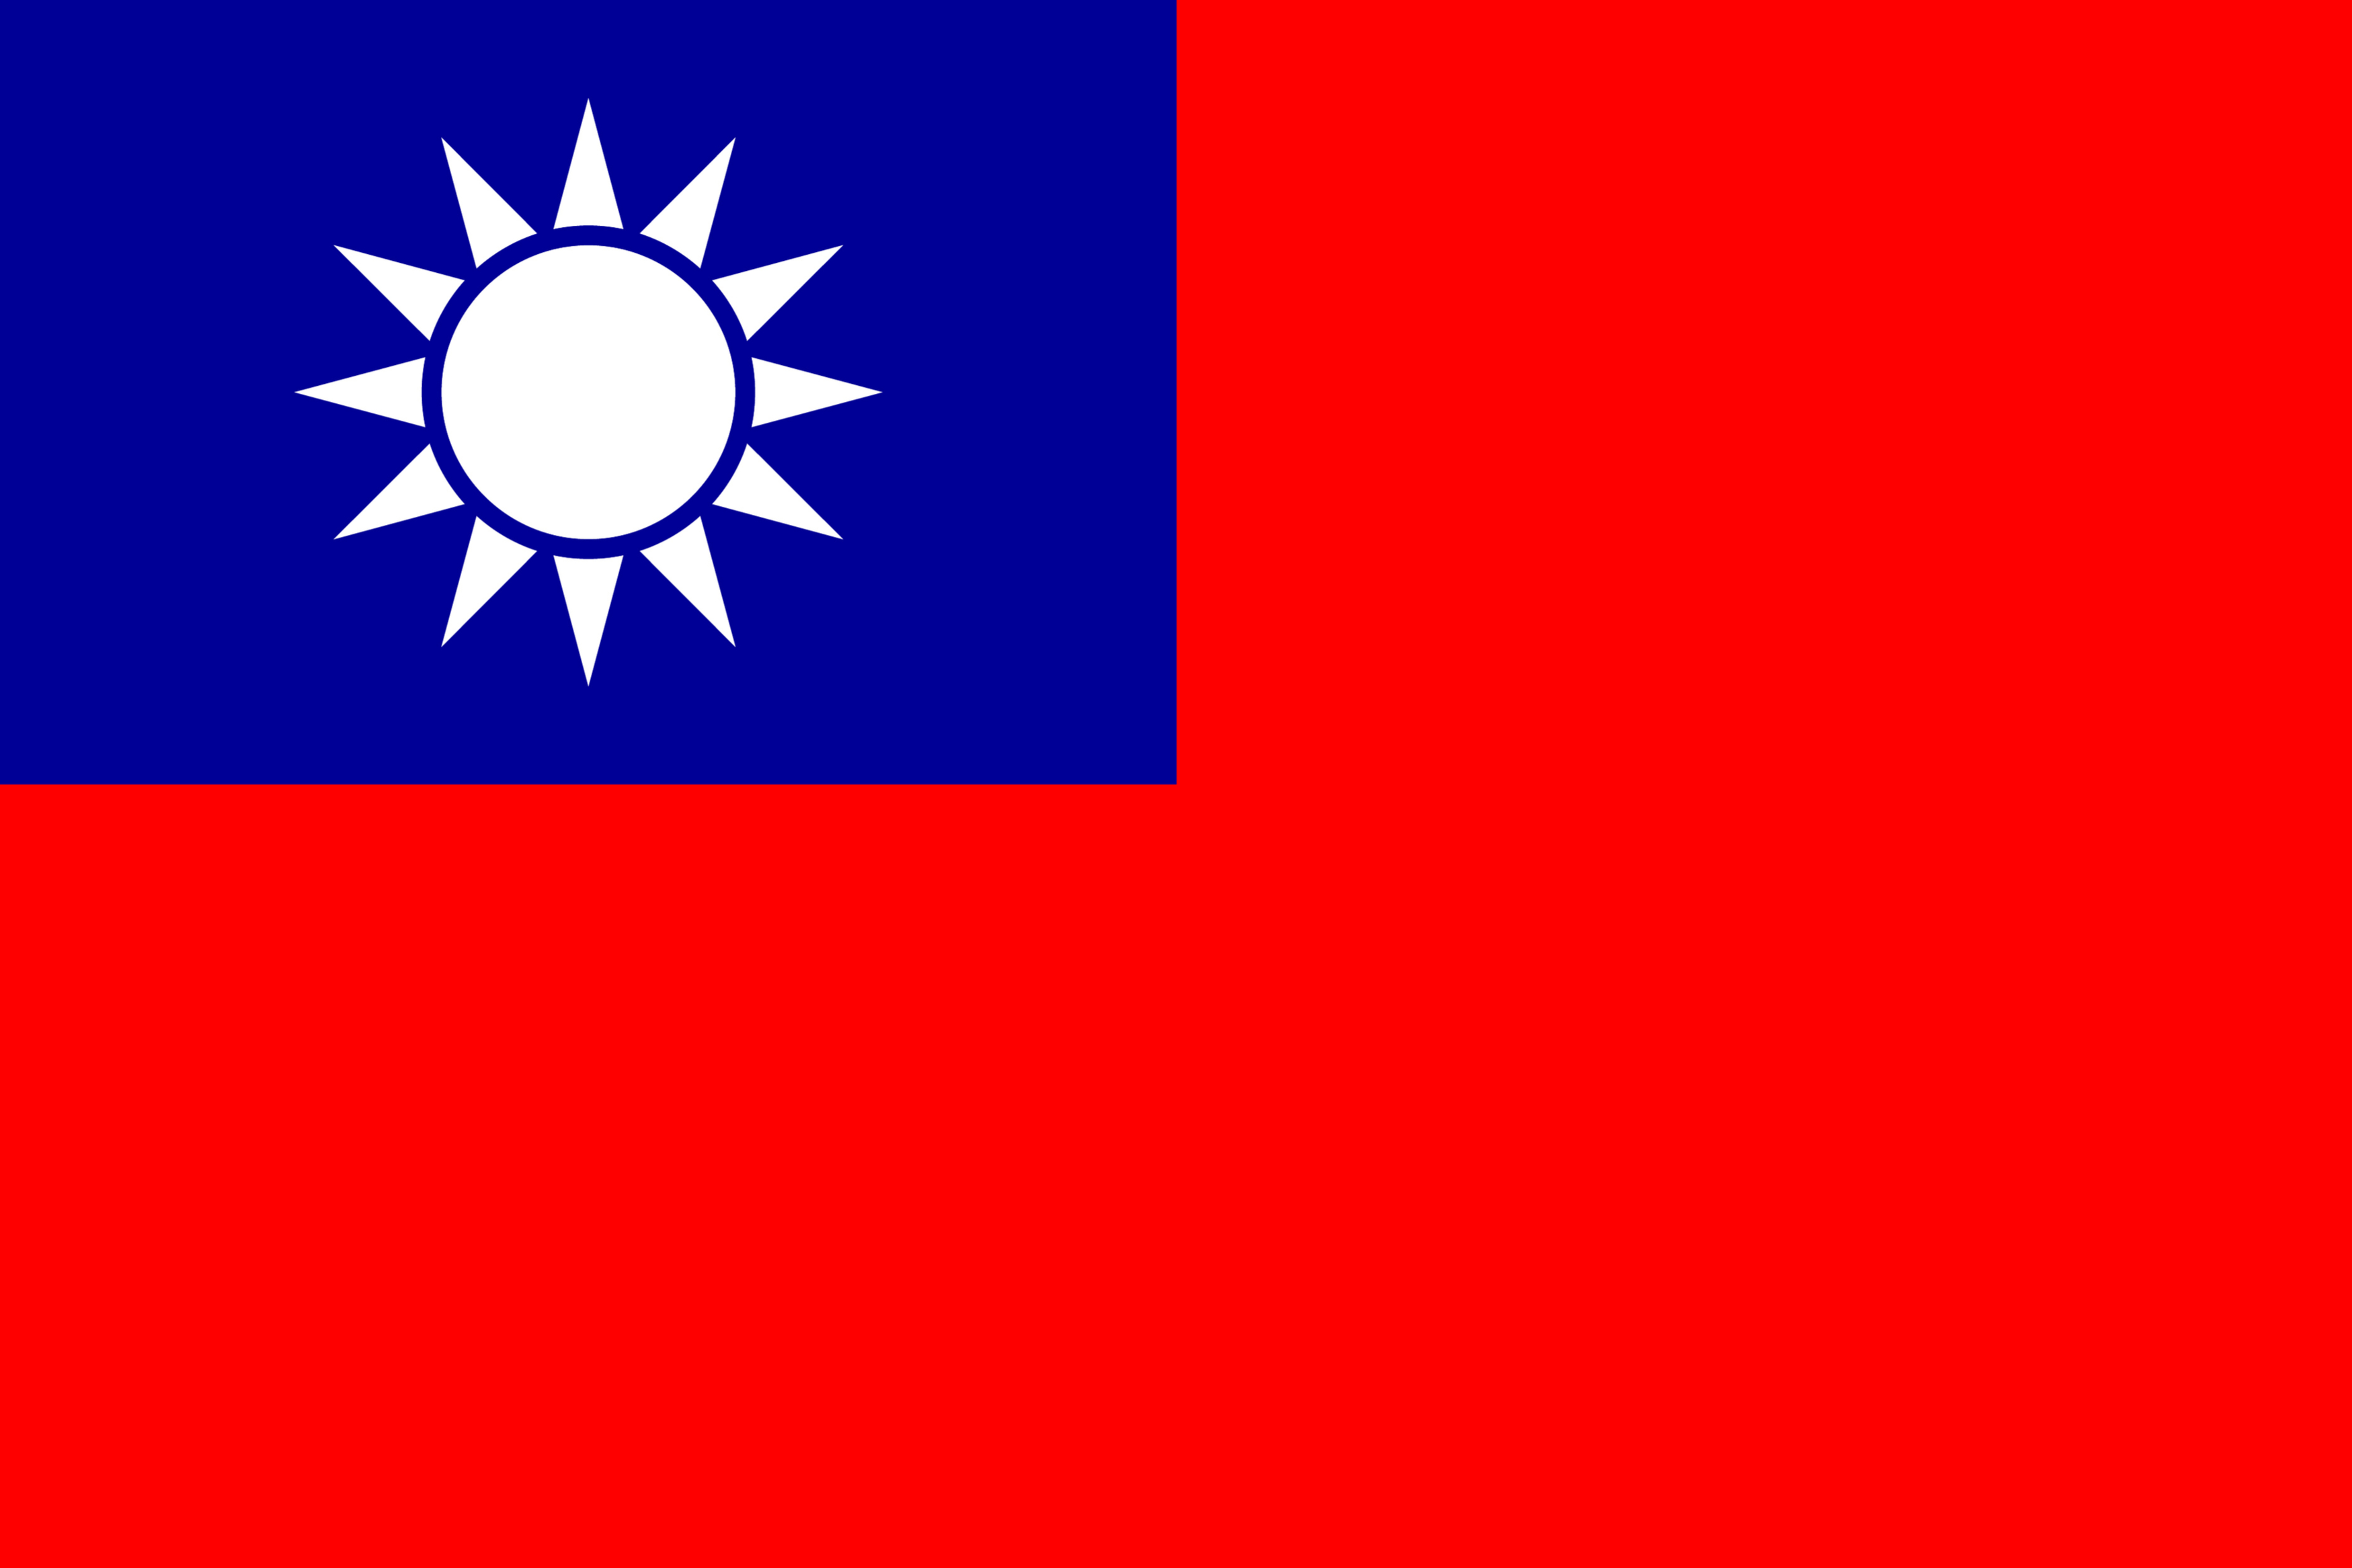 The flag of Taiwan features a 12-pointed sun.